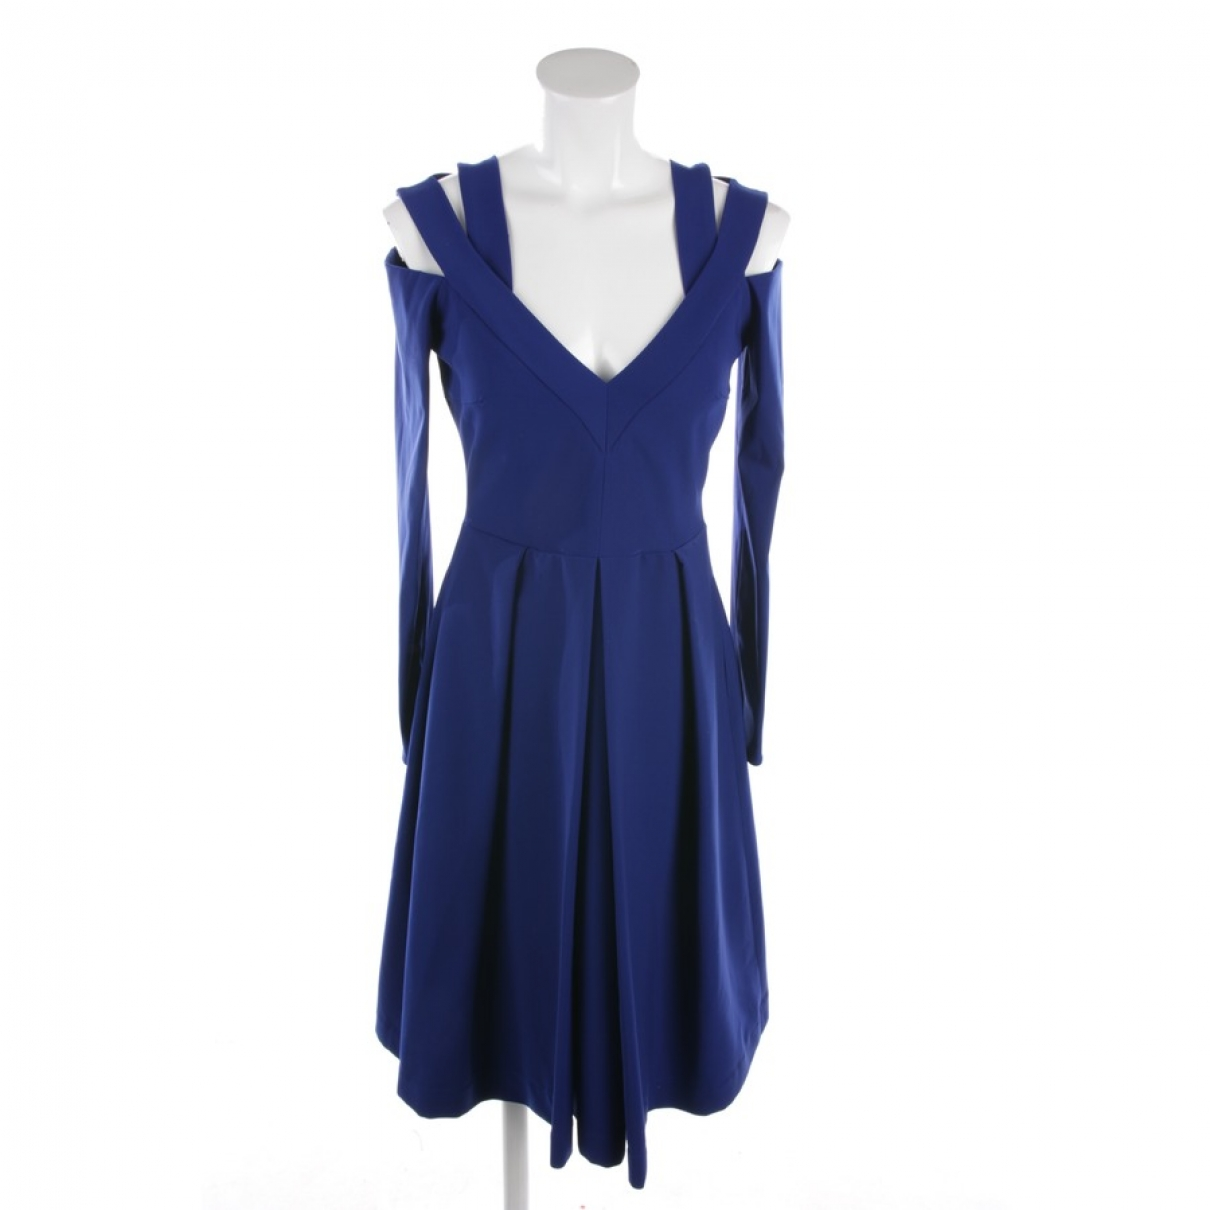 Preen By Thornton Bregazzi \N Kleid in  Blau Polyester